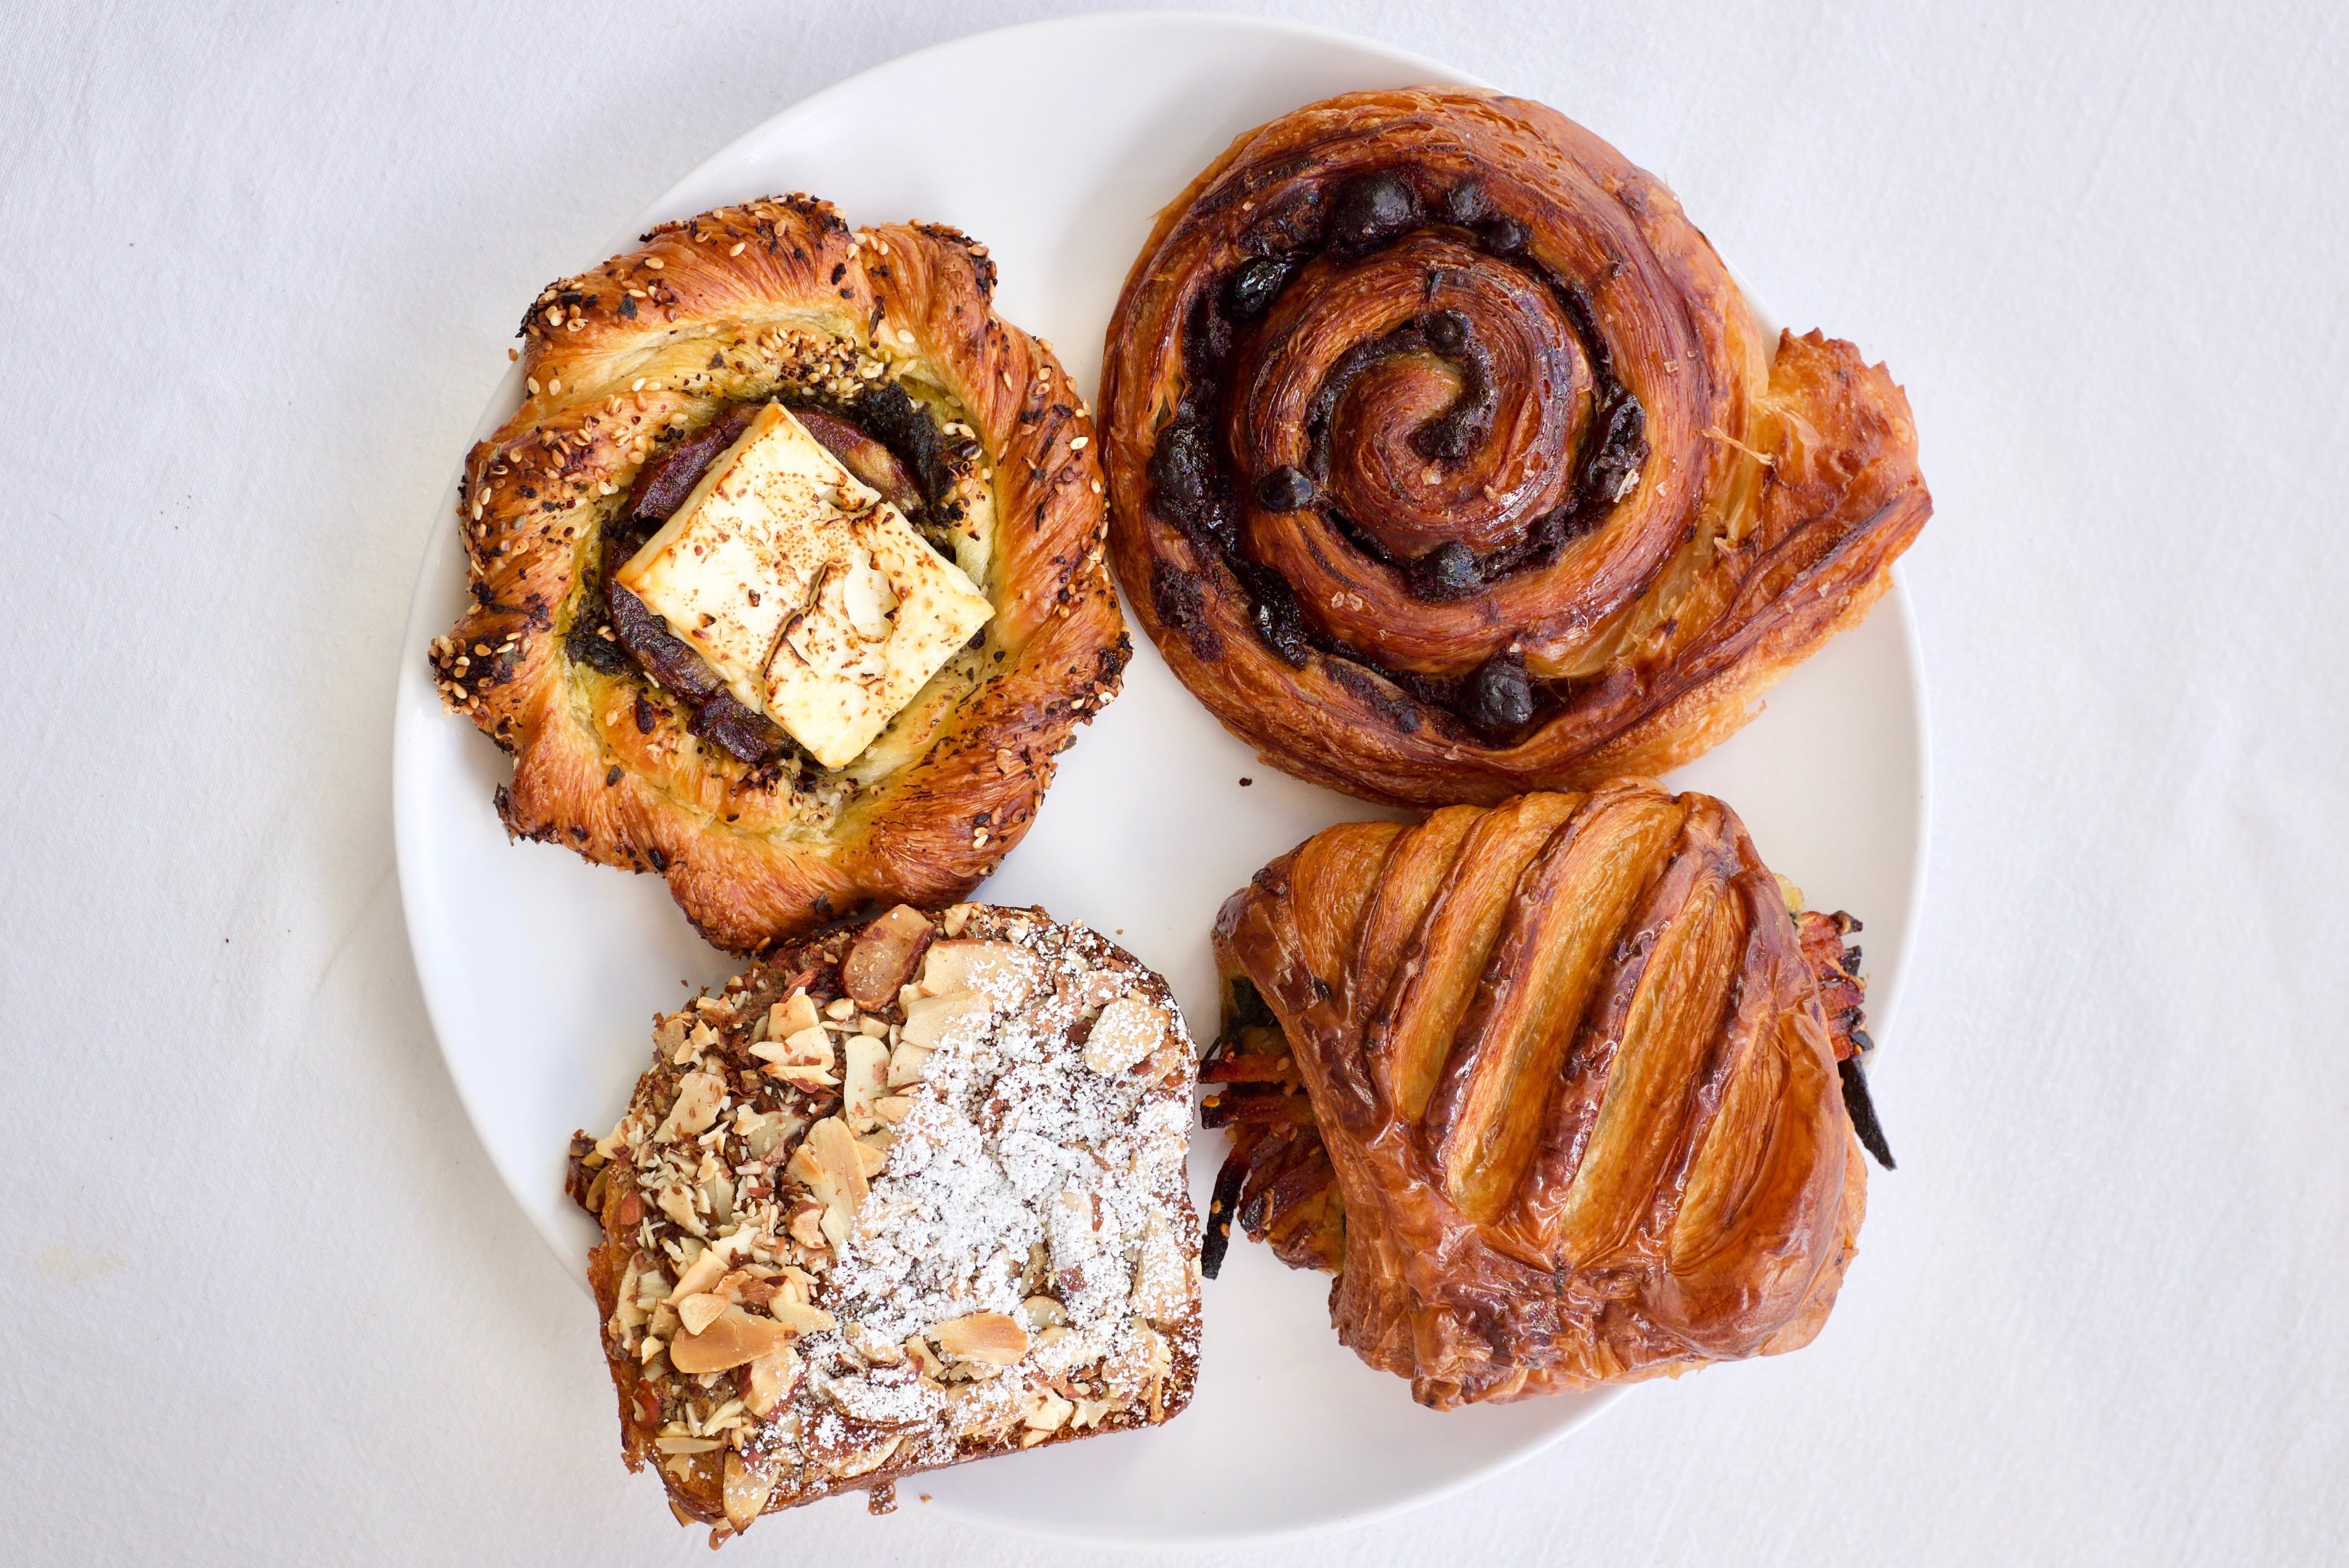 From above, a plate with four different pastries in various textures and shapes